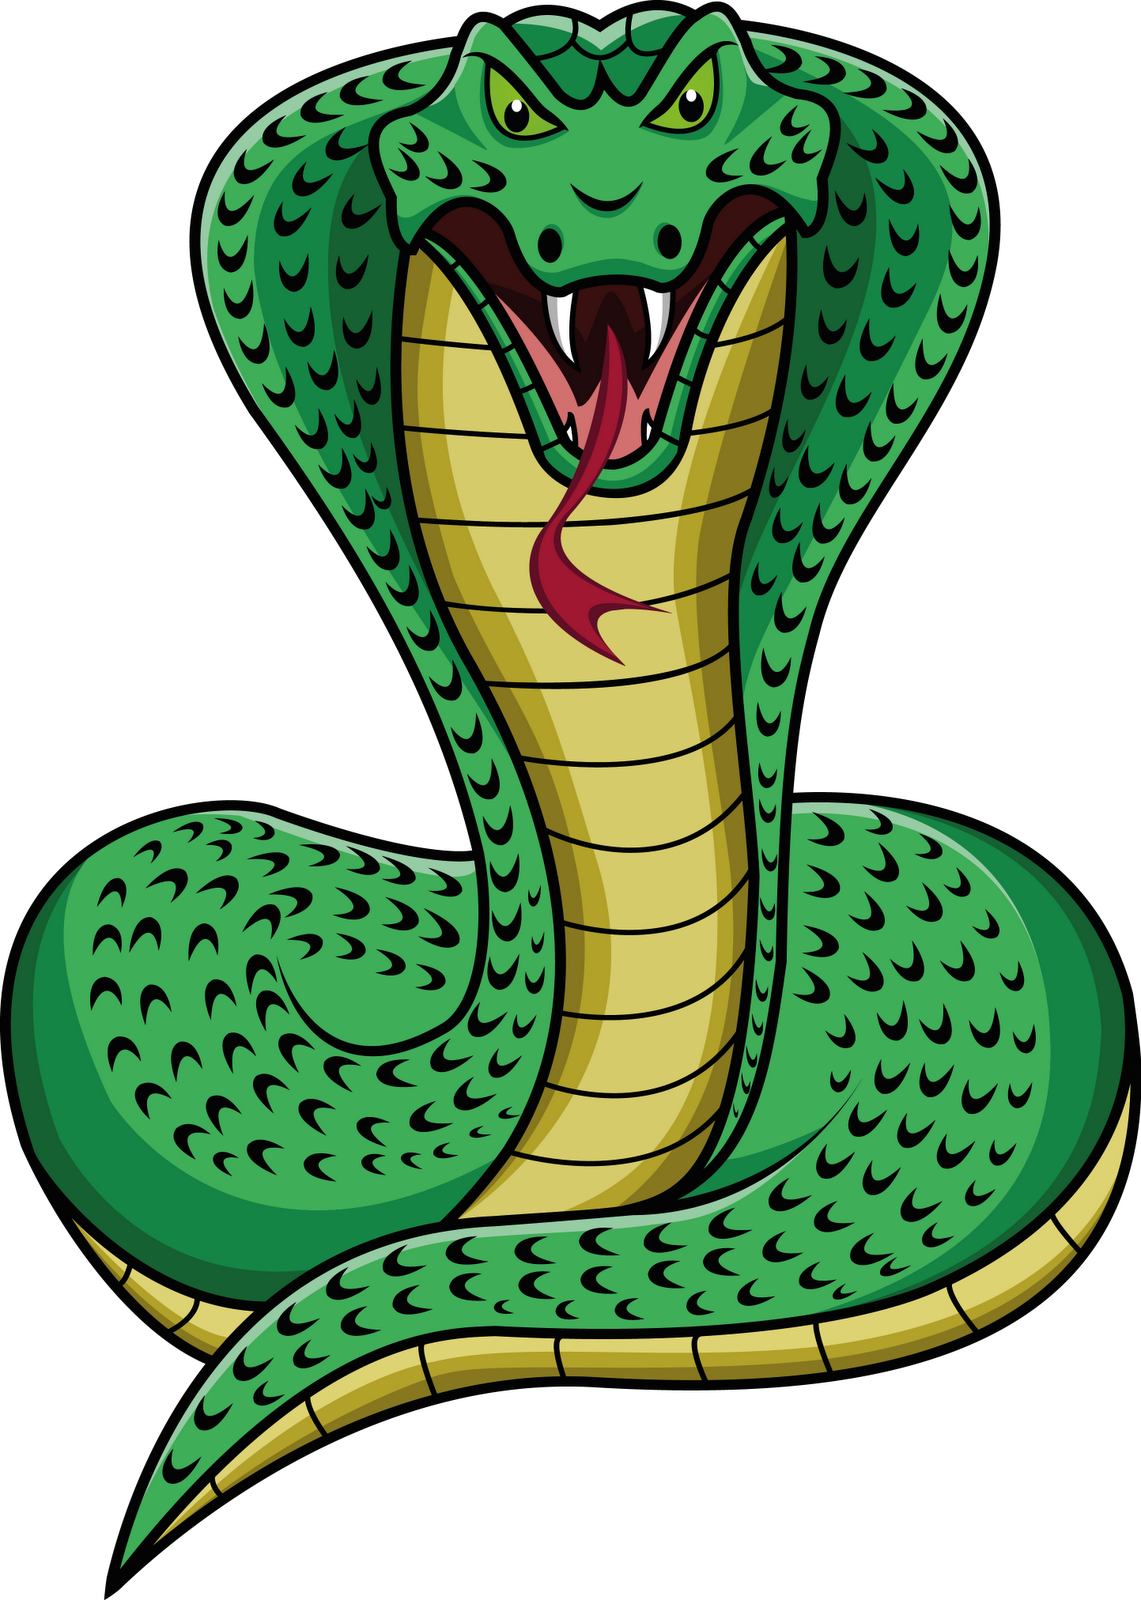 Png images free download. Cobra clipart cool snake